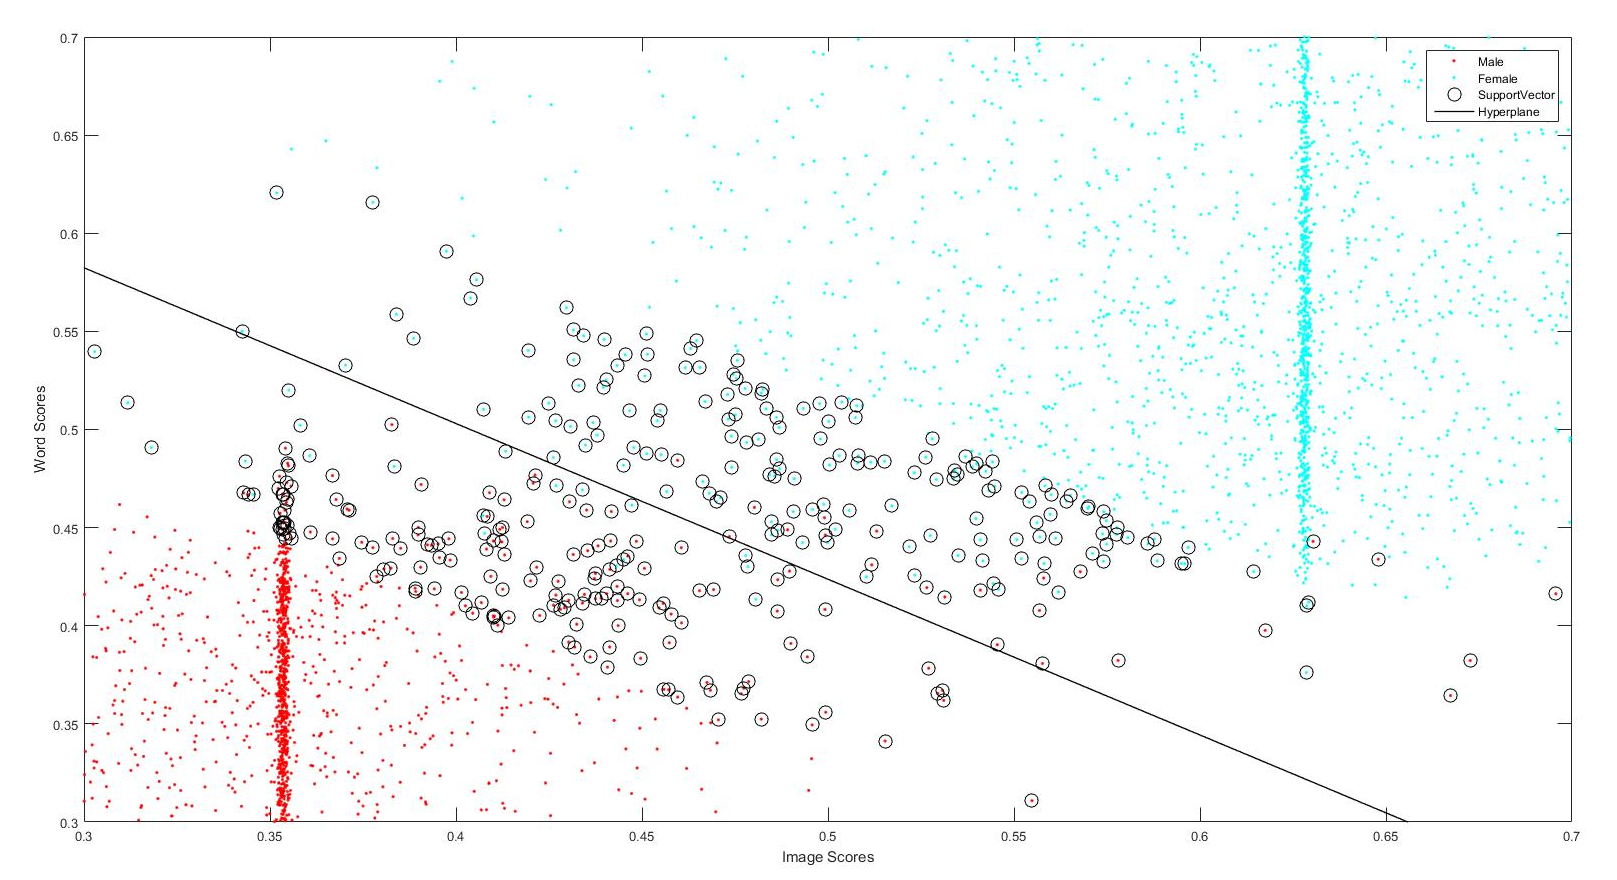 A zoomed in view of the previous plot to show the support vectors. Click to enlarge.